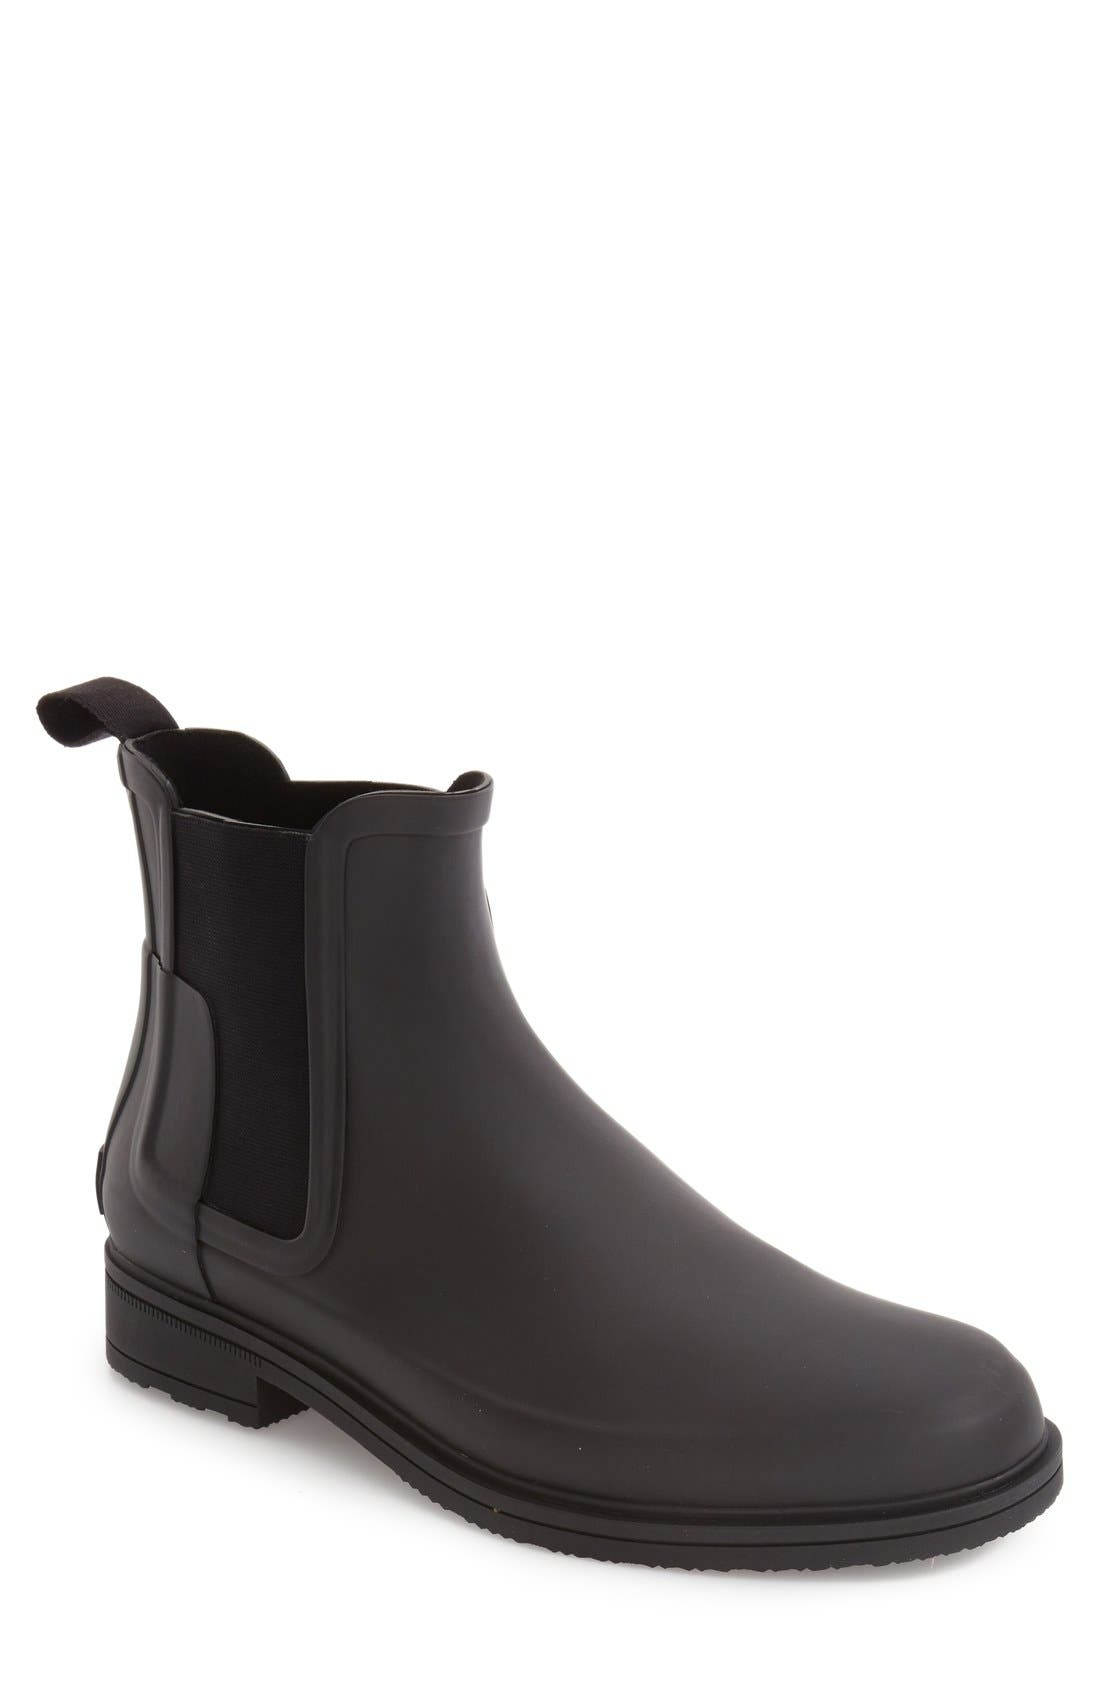 Main Image - Hunter Original Refined Waterproof Chelsea Boot (Men)